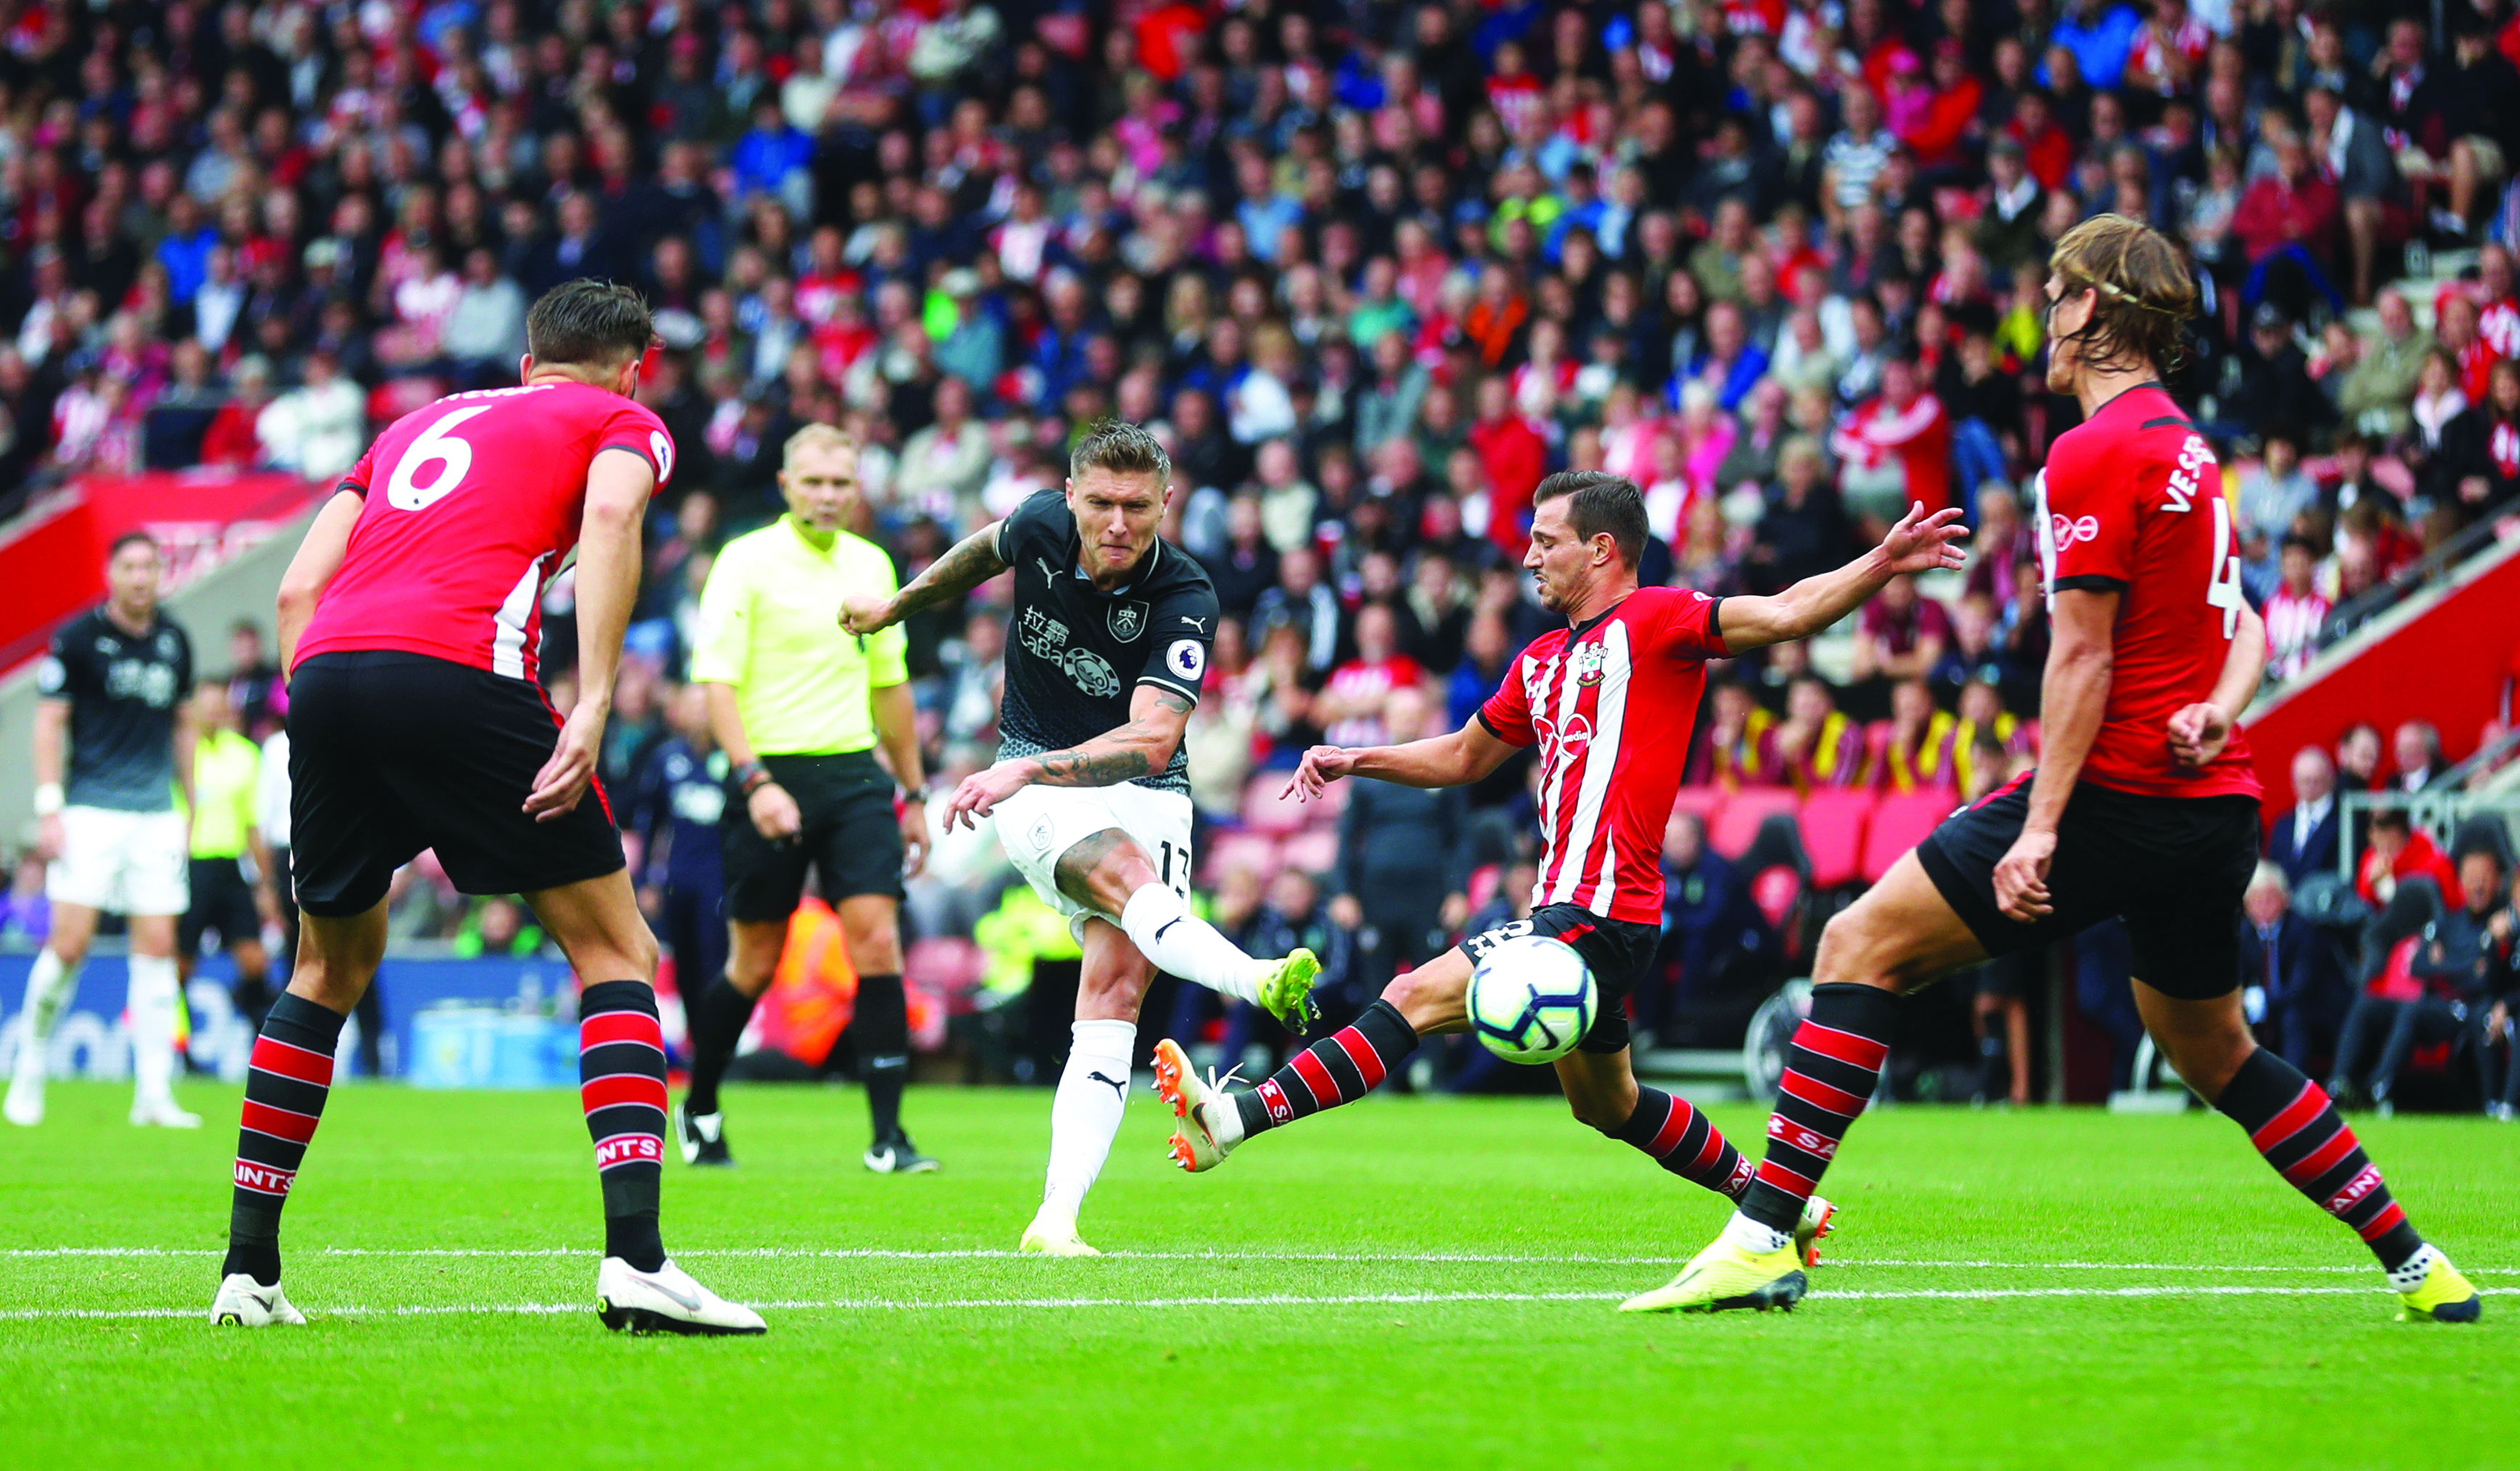 Football: Southampton held to a goalless draw by Burnley